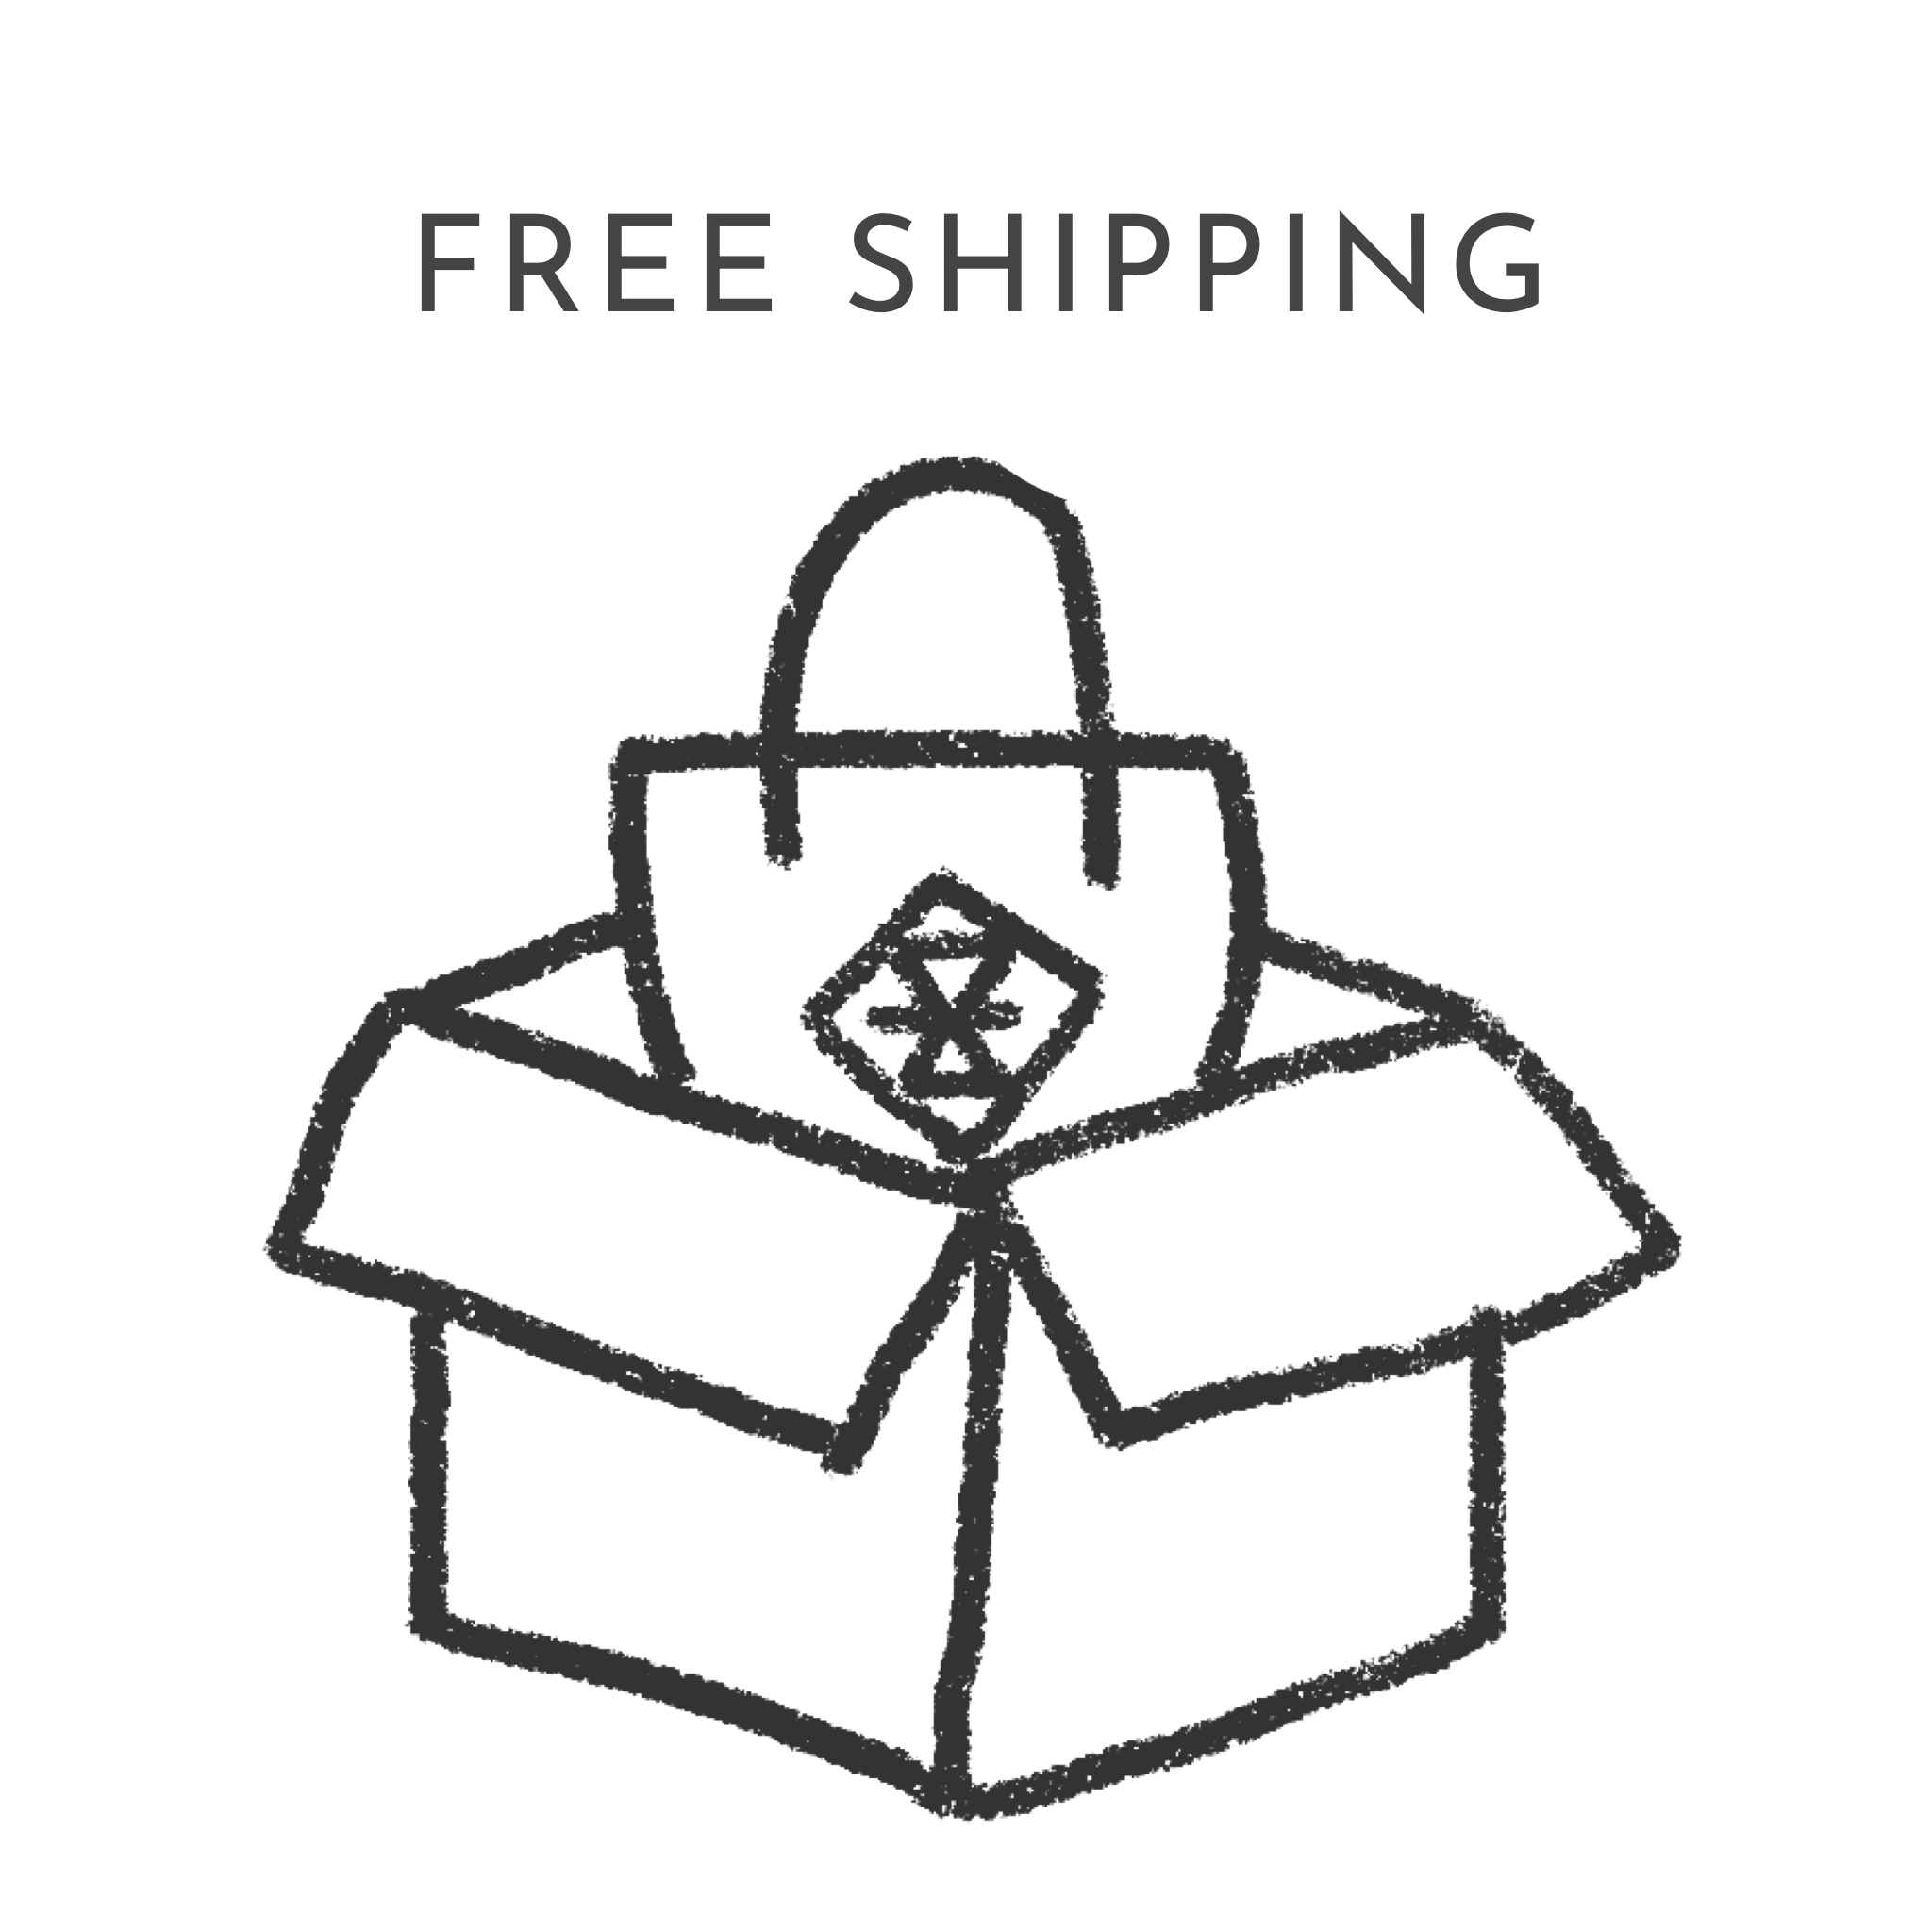 free-shipping-icon-link